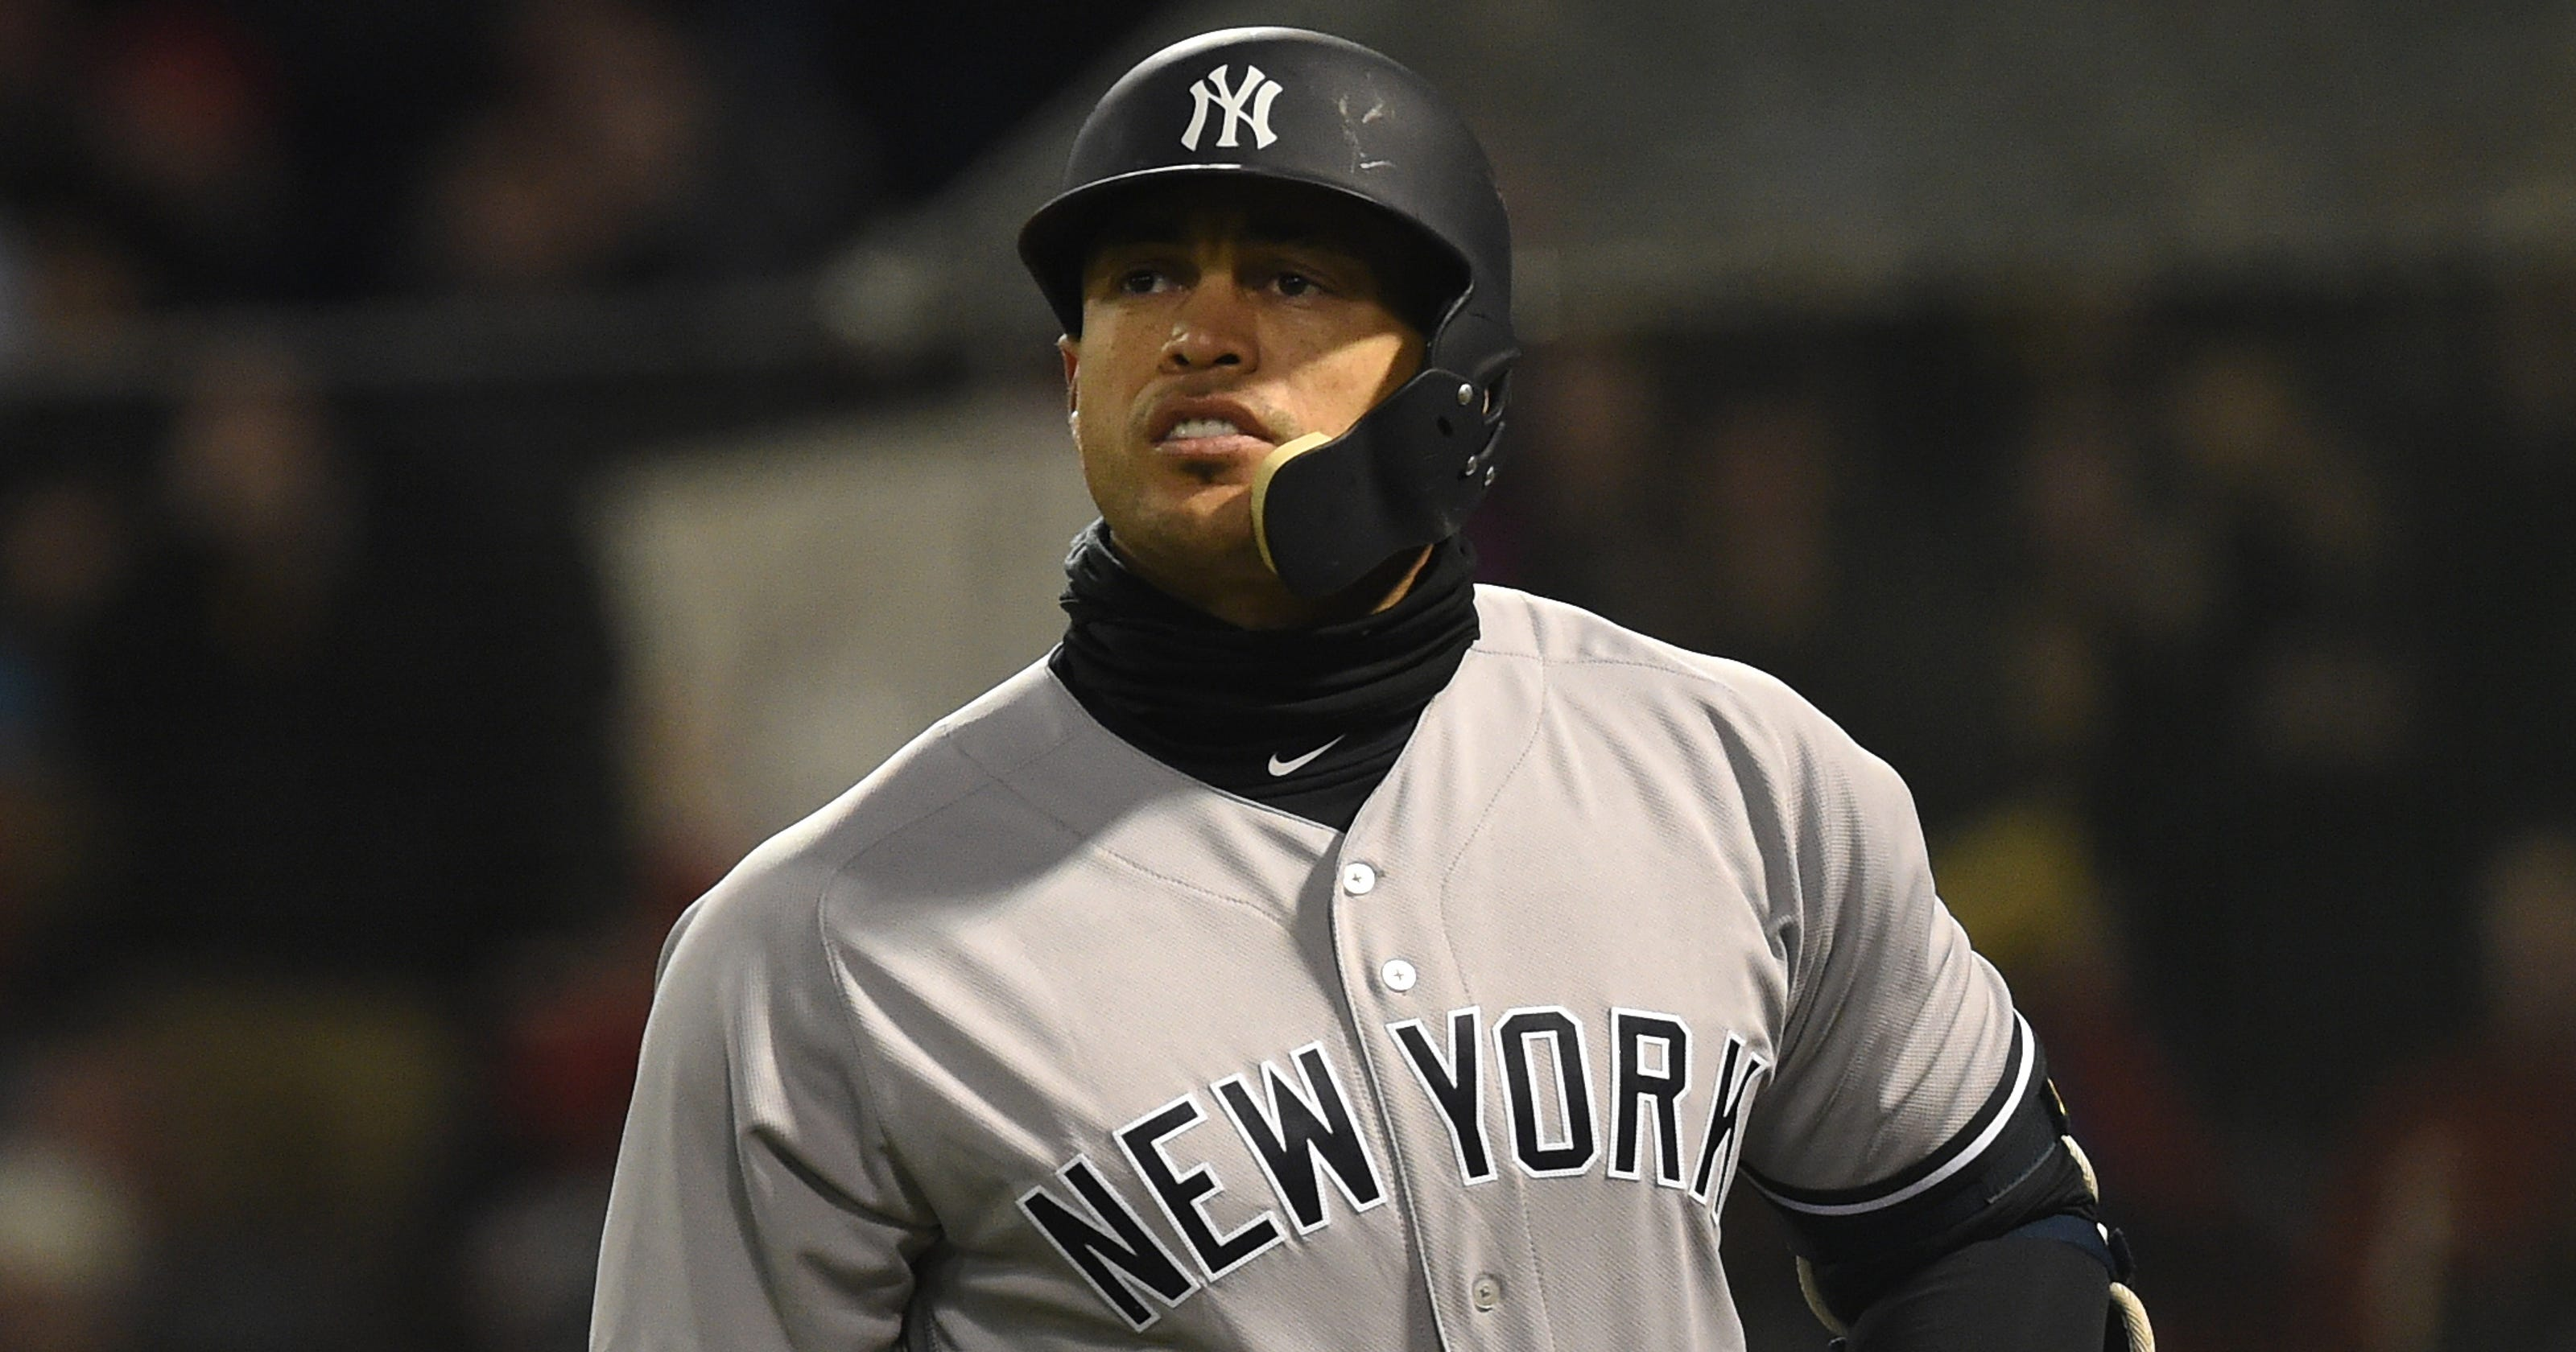 premium selection f975c 8a296 Yankees' Giancarlo Stanton forced to face music in blowout loss